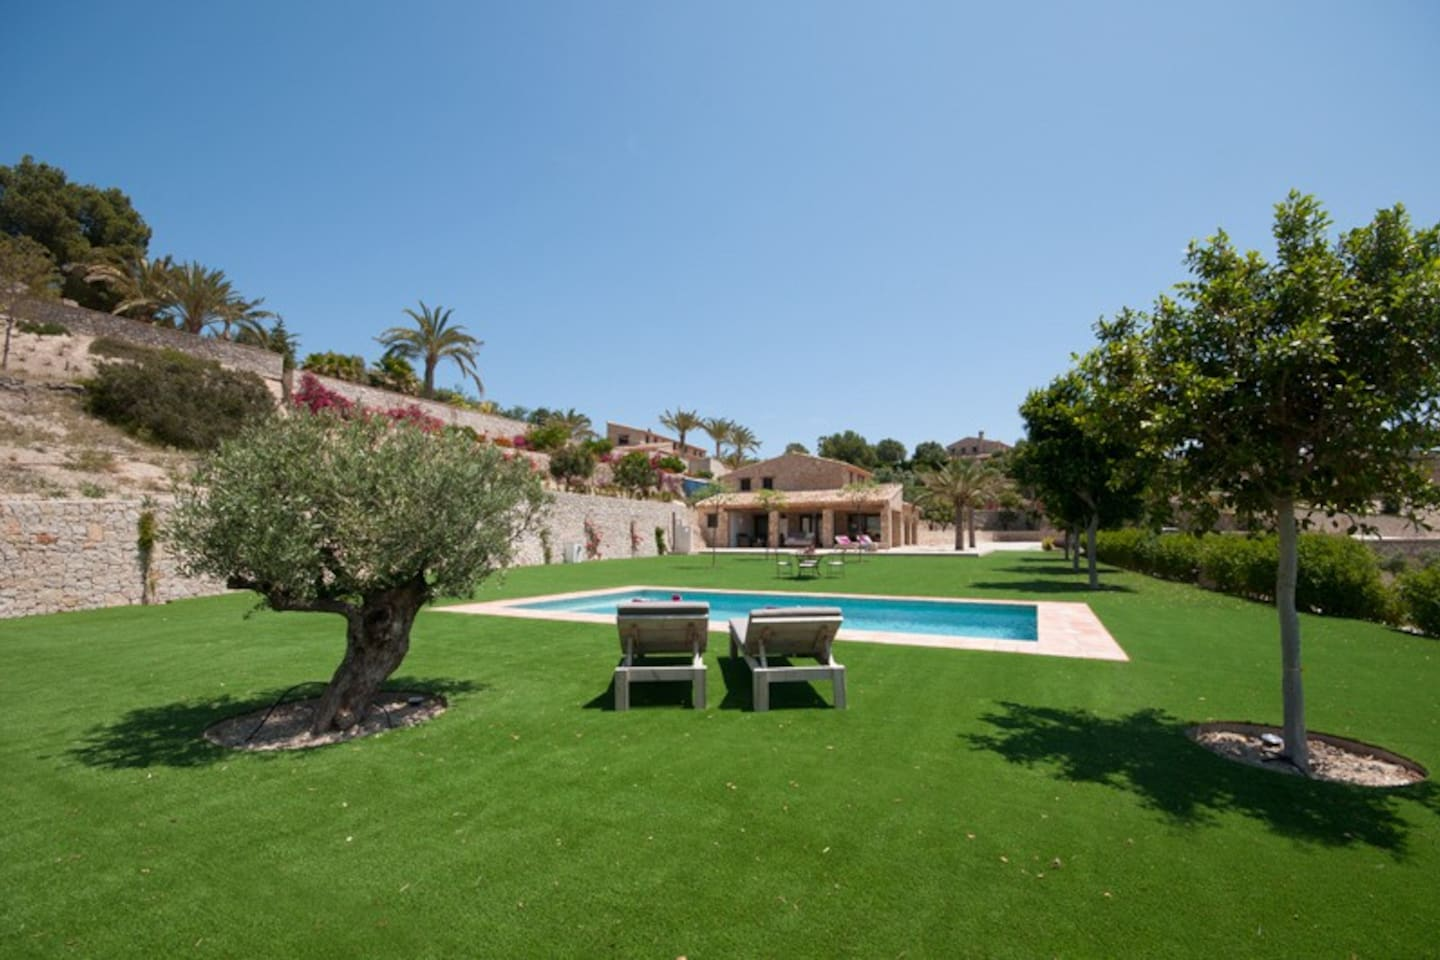 The garden with pool and sun loungers